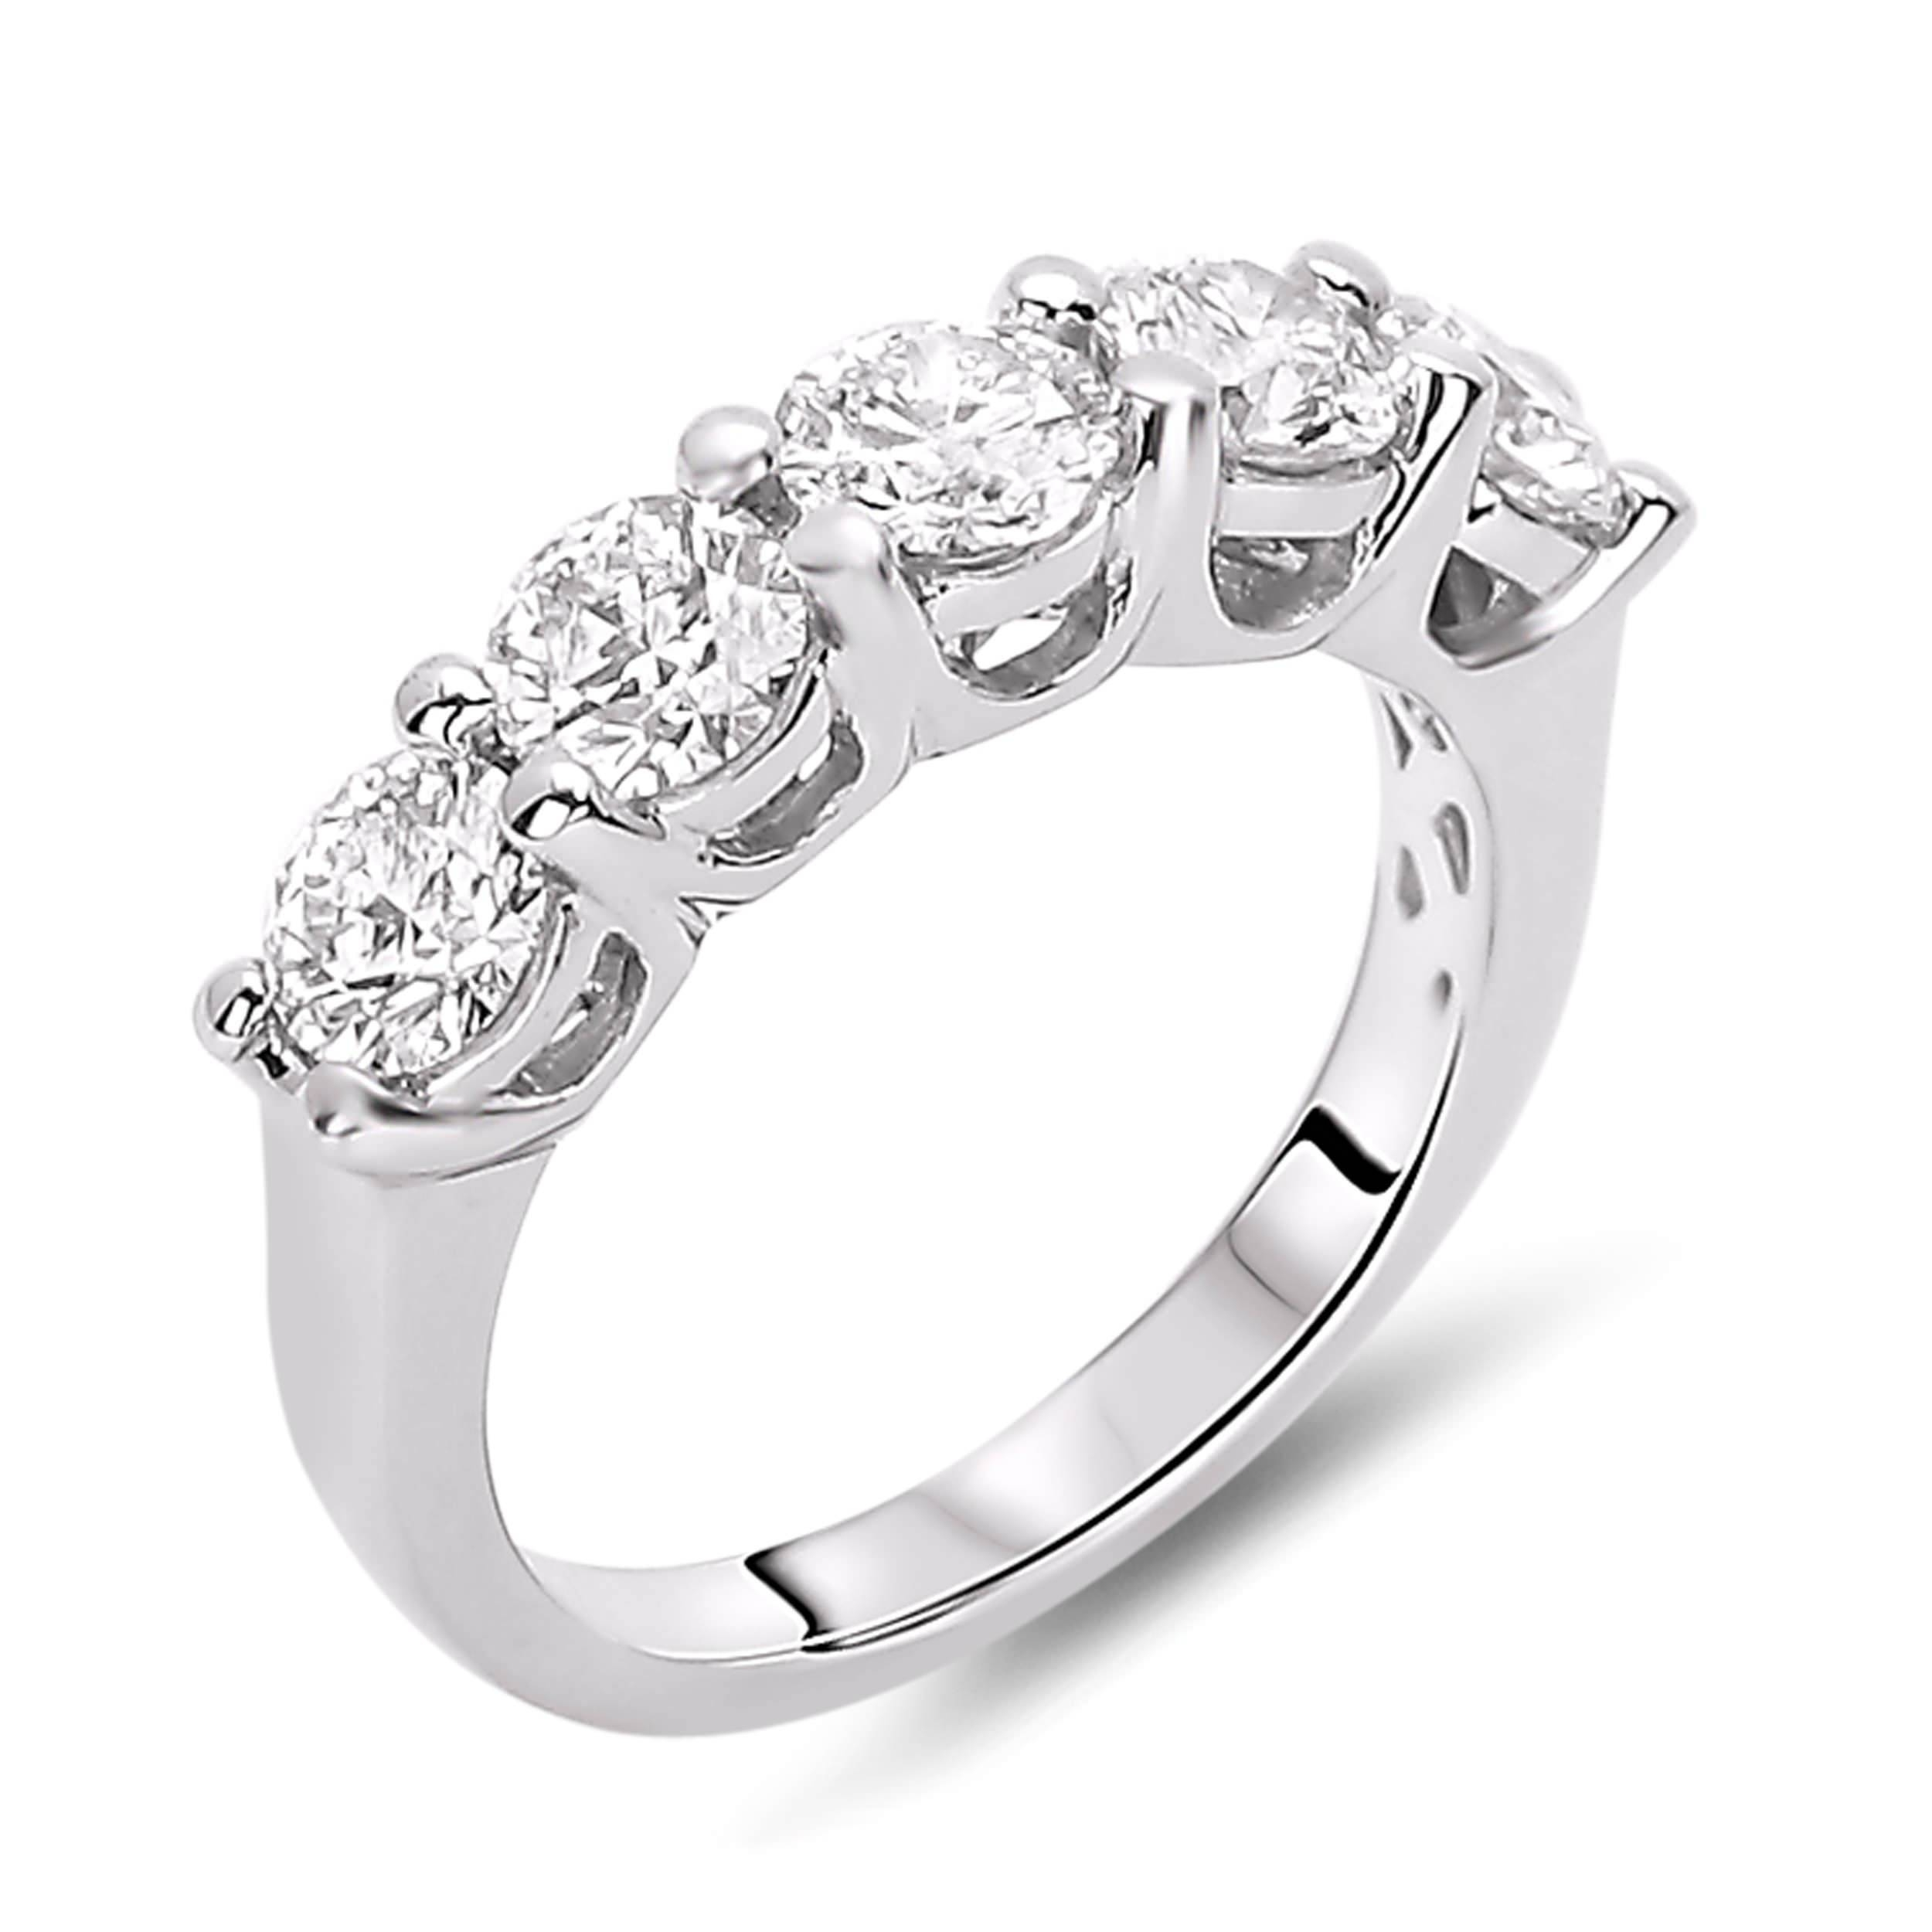 rings ring band set jewelers and platinum vs g ct a tiffany channel york jewelry diamond new co